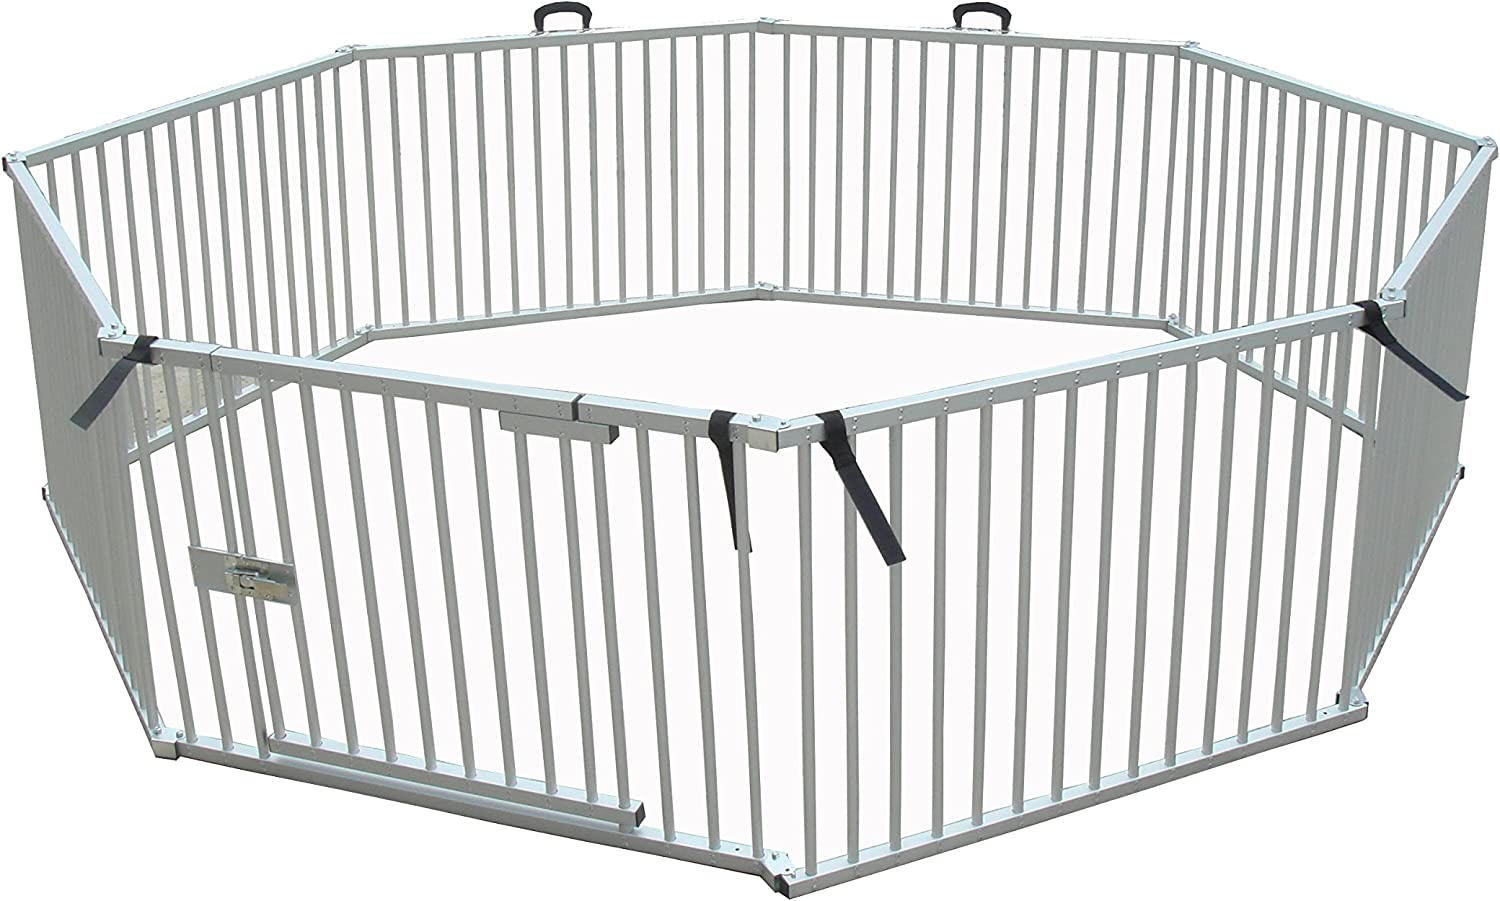 Cool Runners Pro Series Secure Aluminum Portable Expandable Exercise Enclosure 8 Sections (25 H x 36 L Per Section)